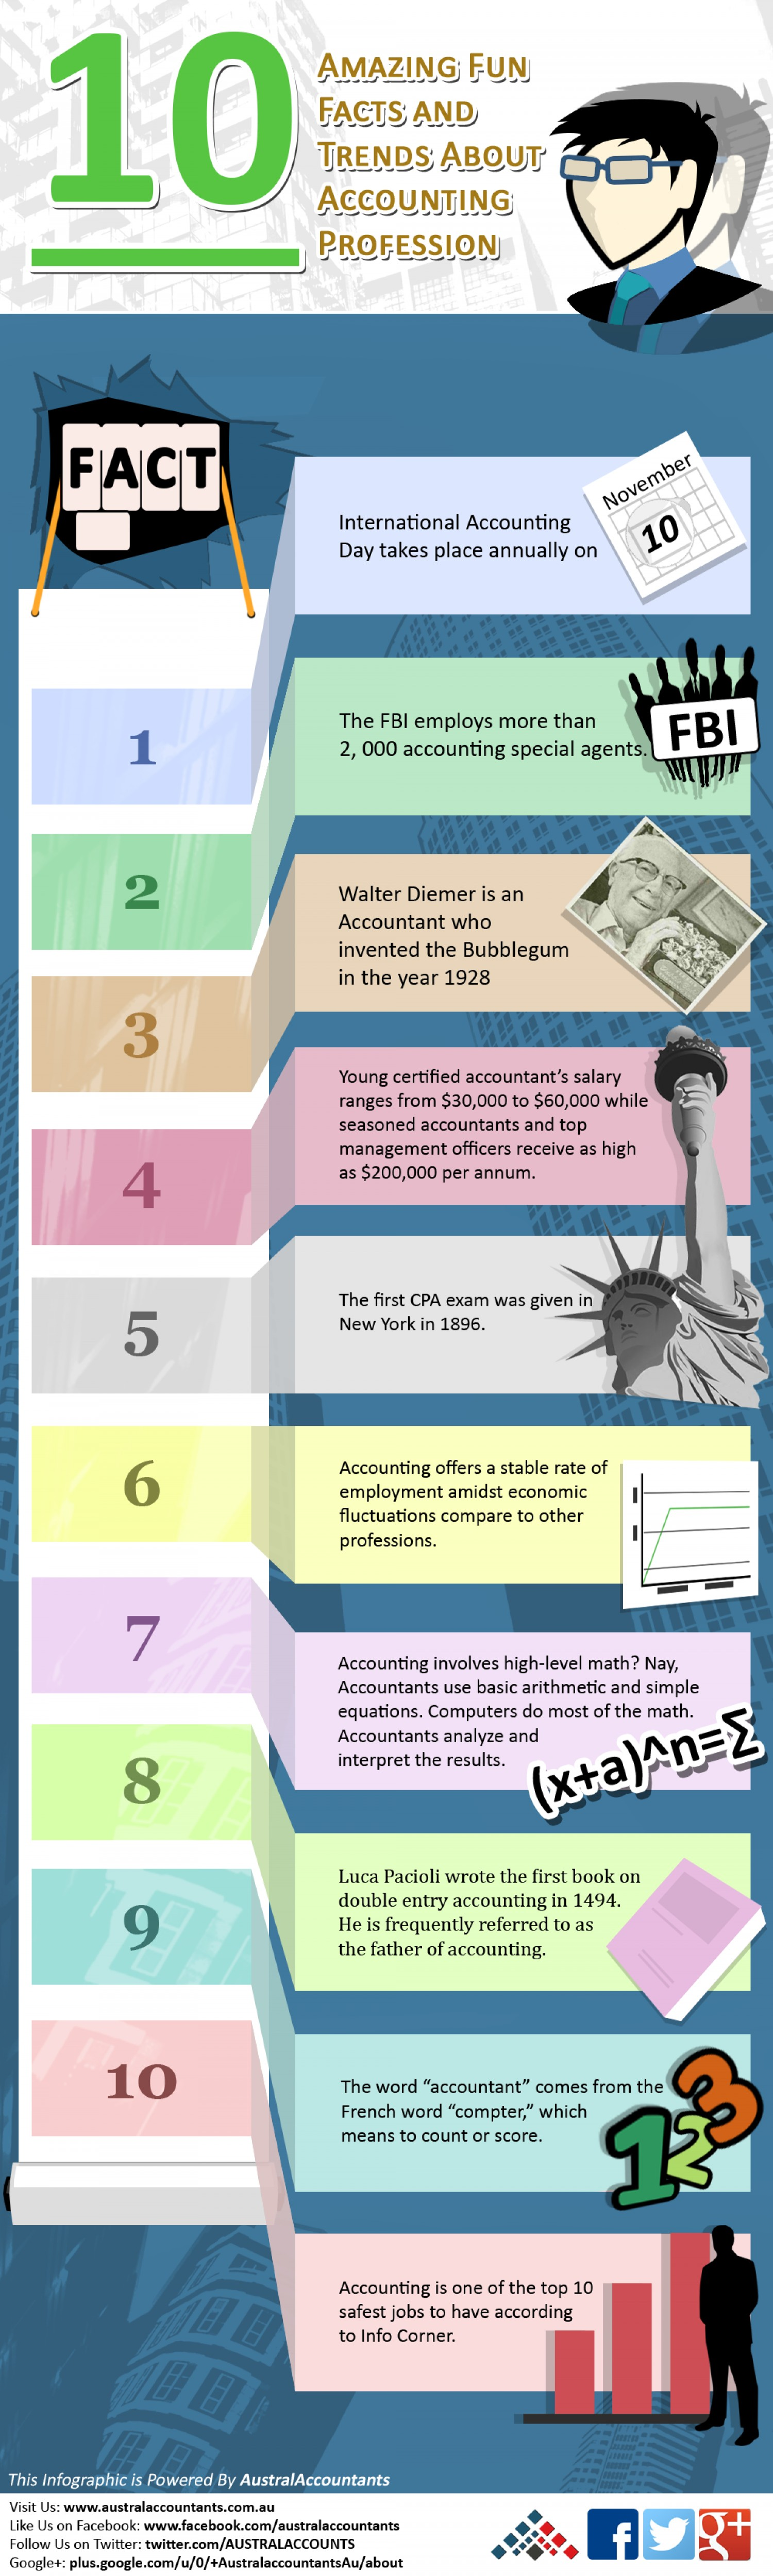 amazing fun facts about accounting profession